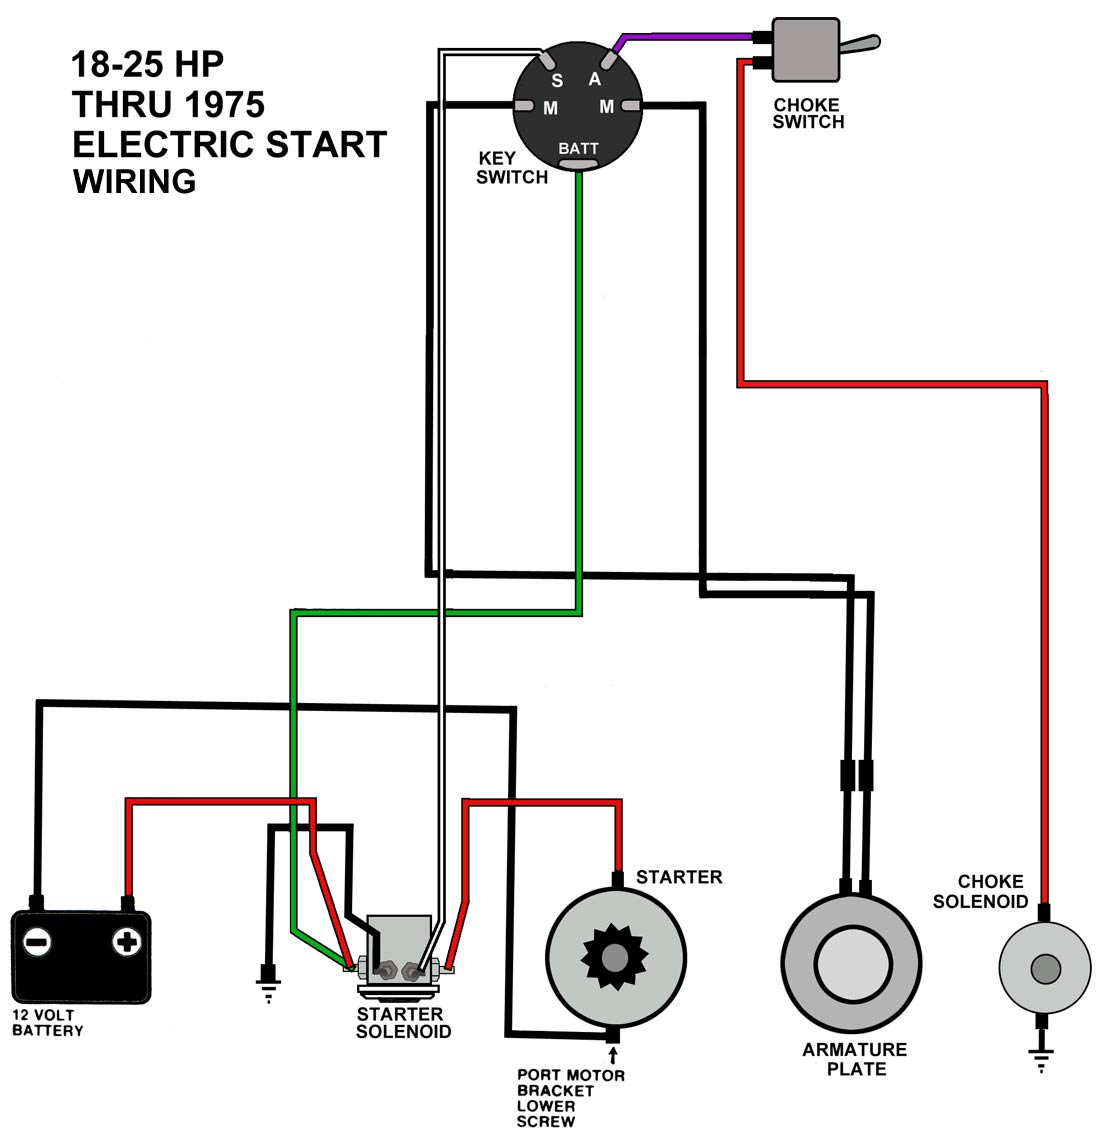 remote starter switch wiring diagrams evinrude johnson outboard wiring diagrams mastertech marine  evinrude johnson outboard wiring